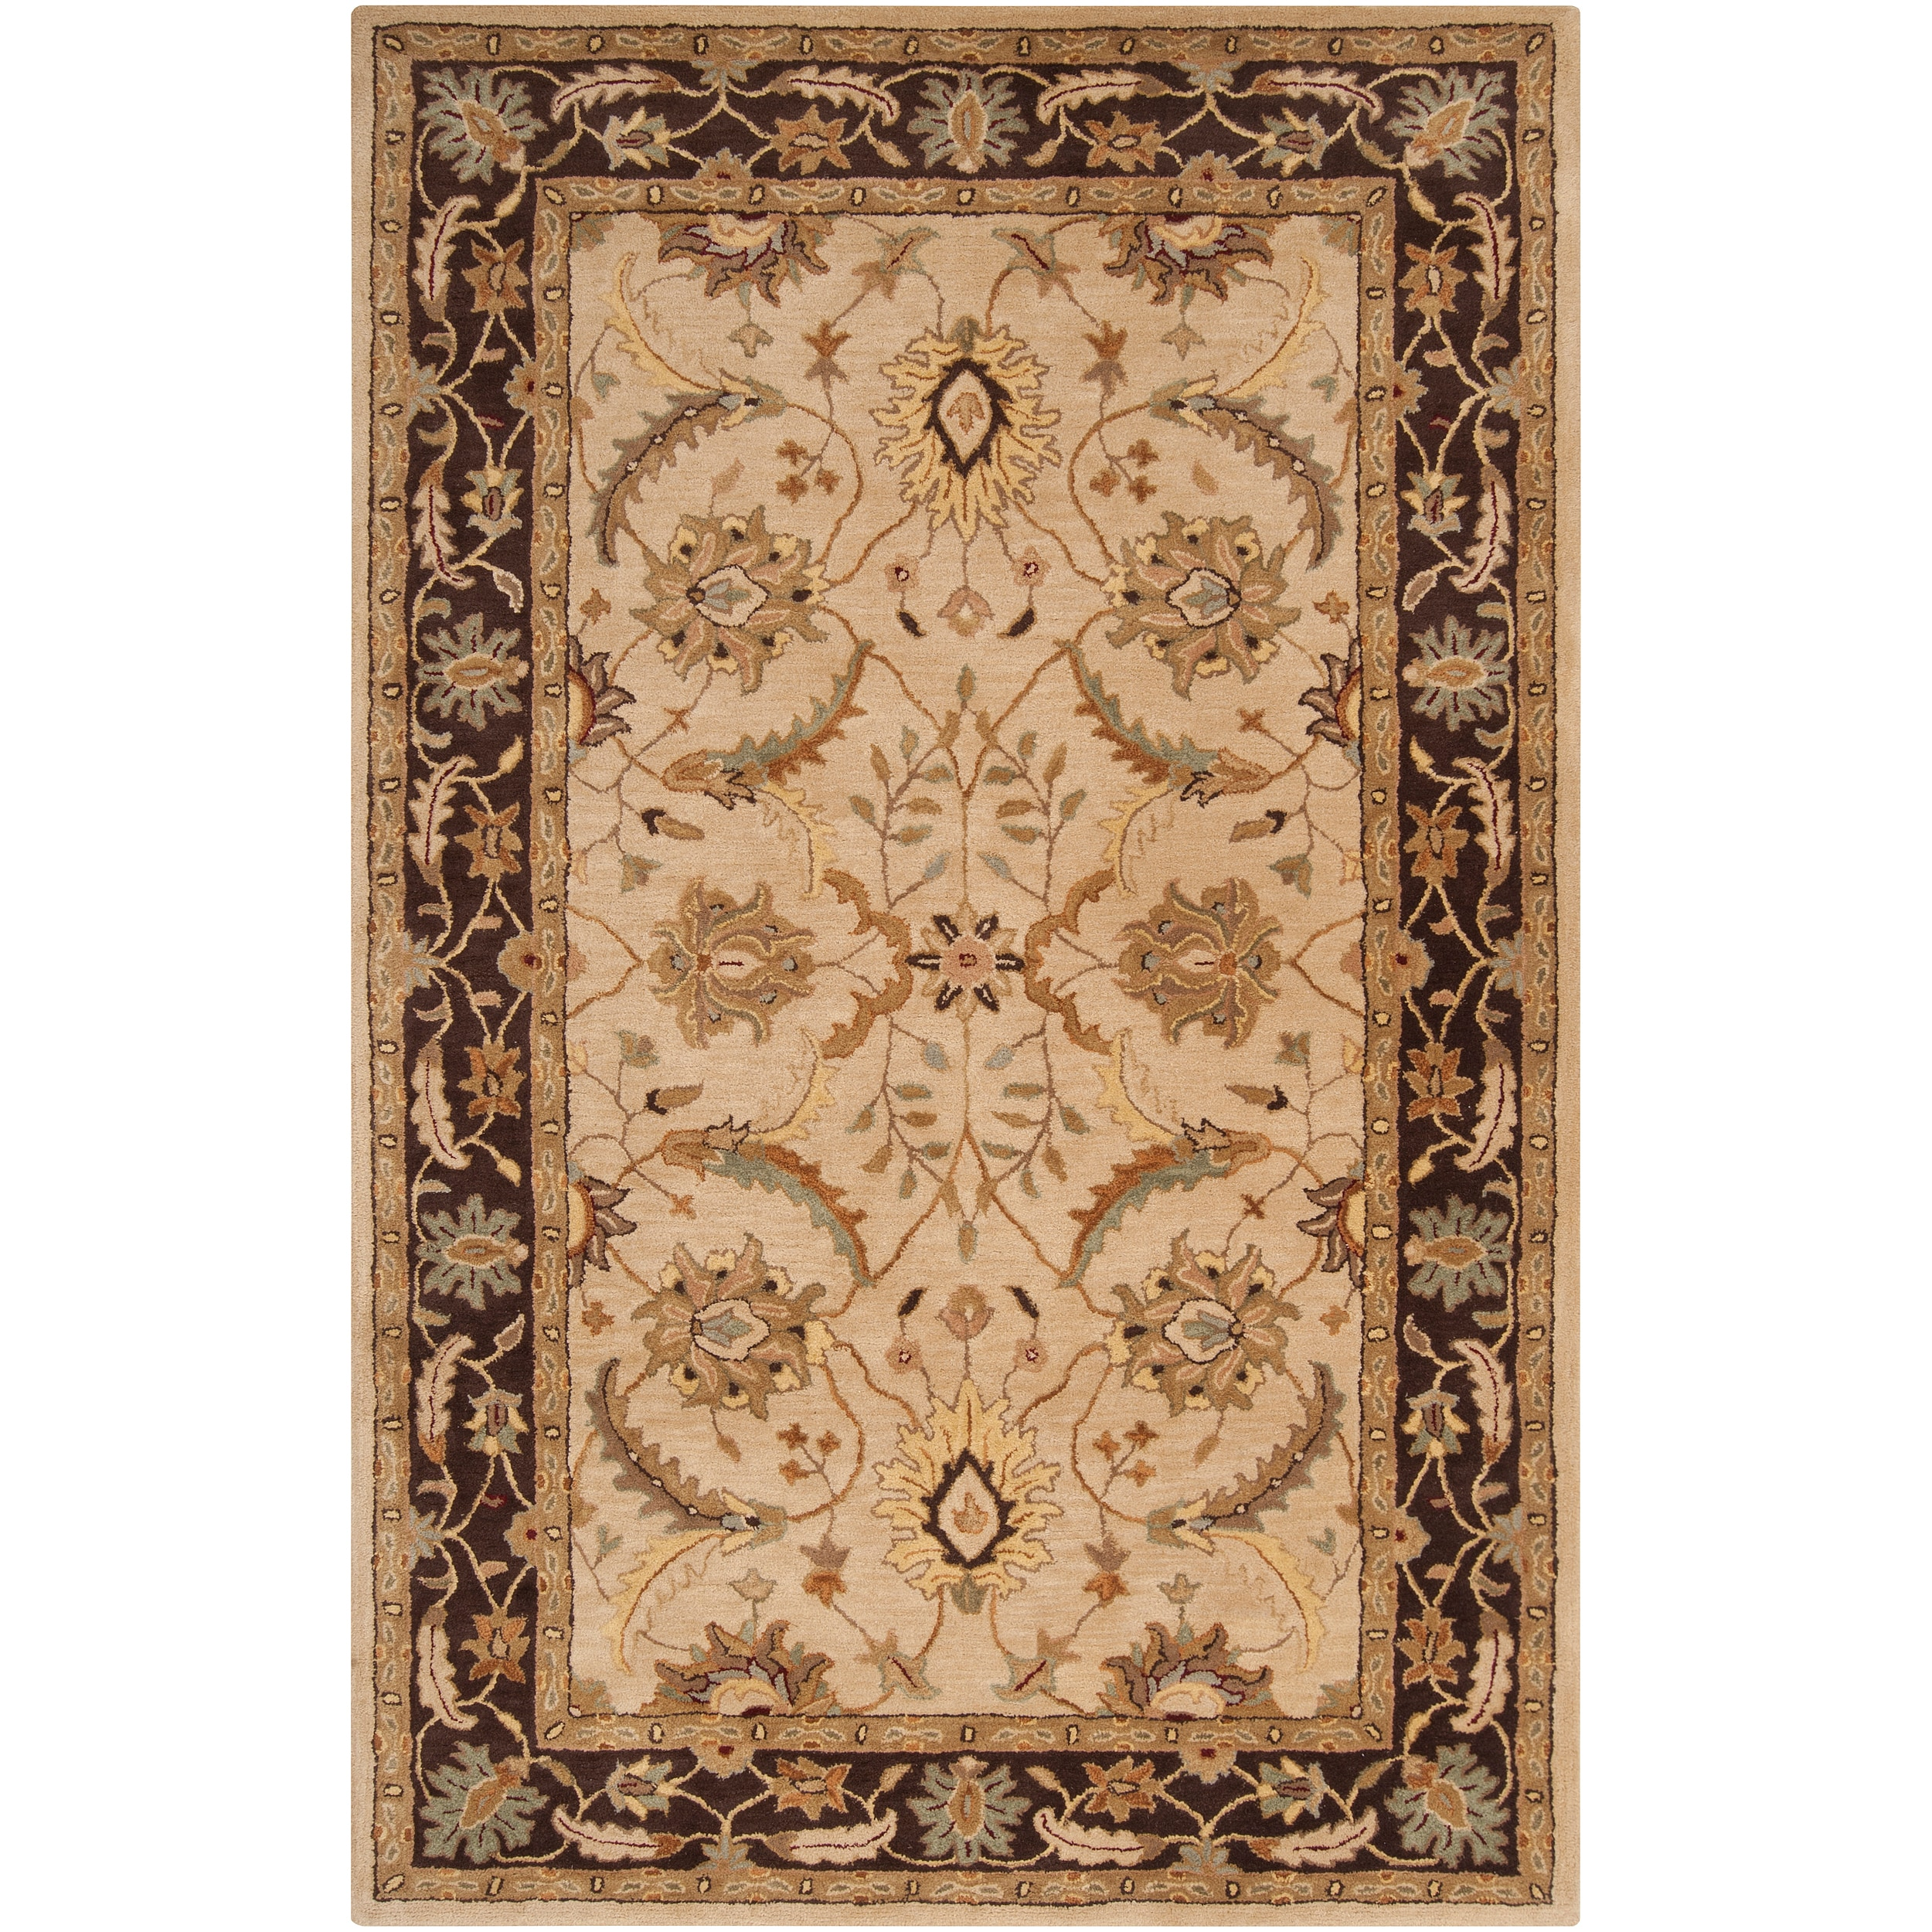 Hand-tufted Beige Clifford New Zealand Wool Area Rug - 8' x 11'